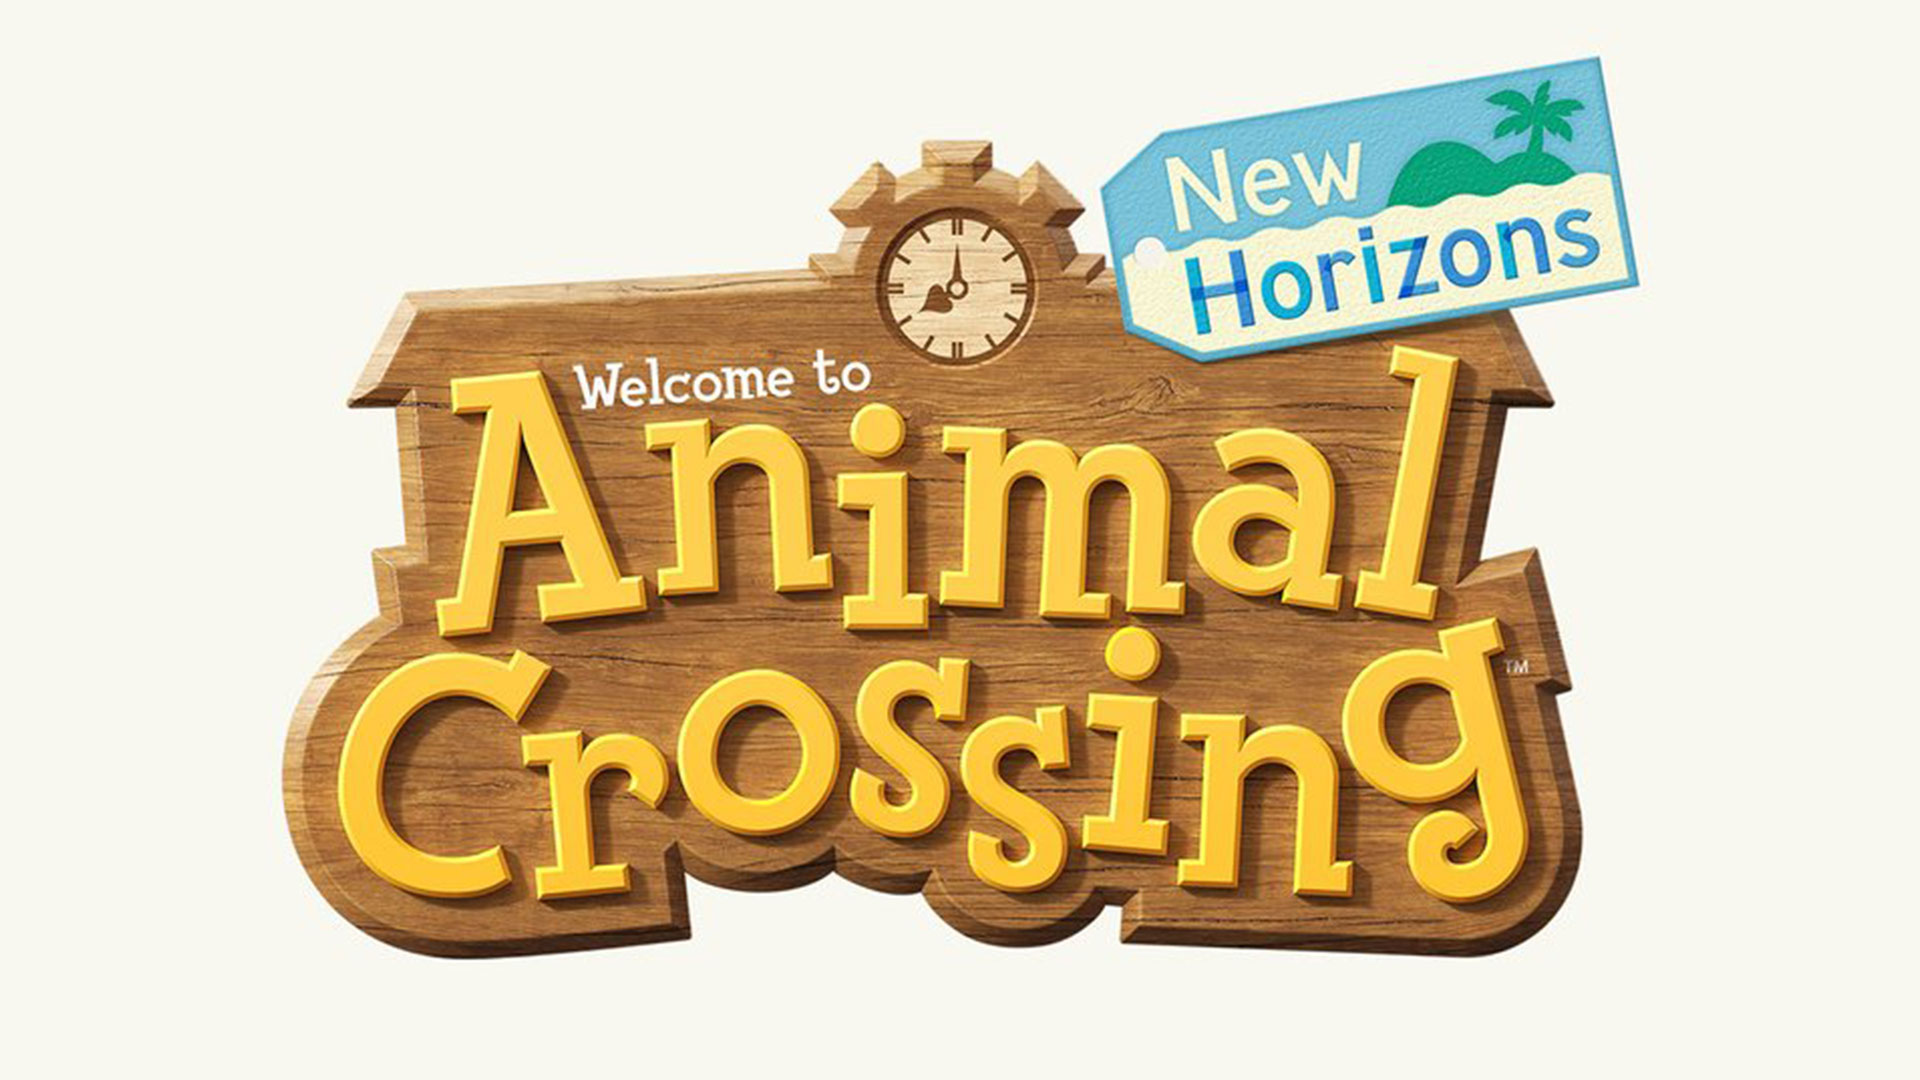 Animal Crossing: New Horizons - All the critters you can catch, location and prices